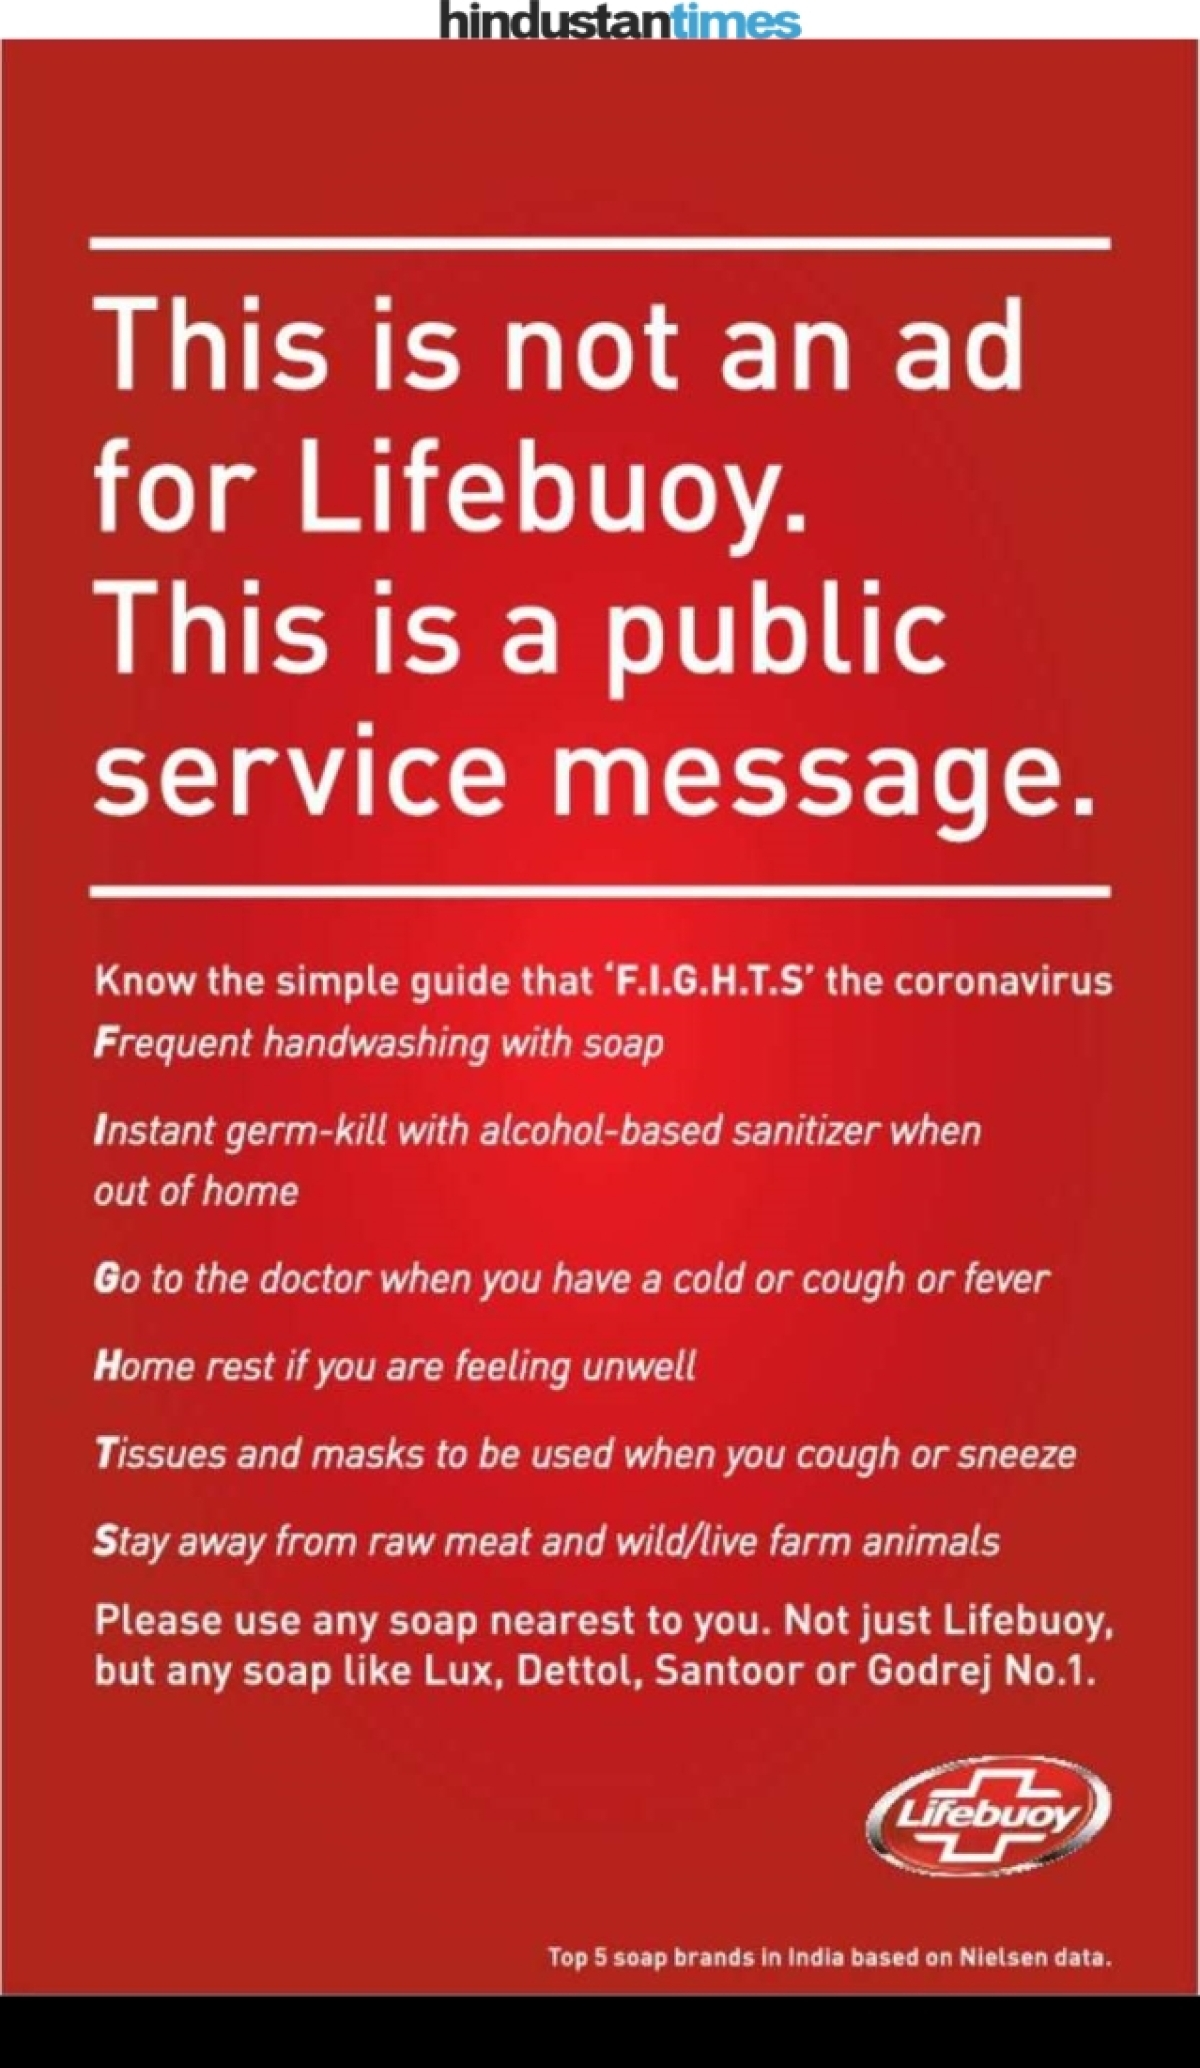 Lifebuoy's new ad harps on hugs and kisses in a social distancing era